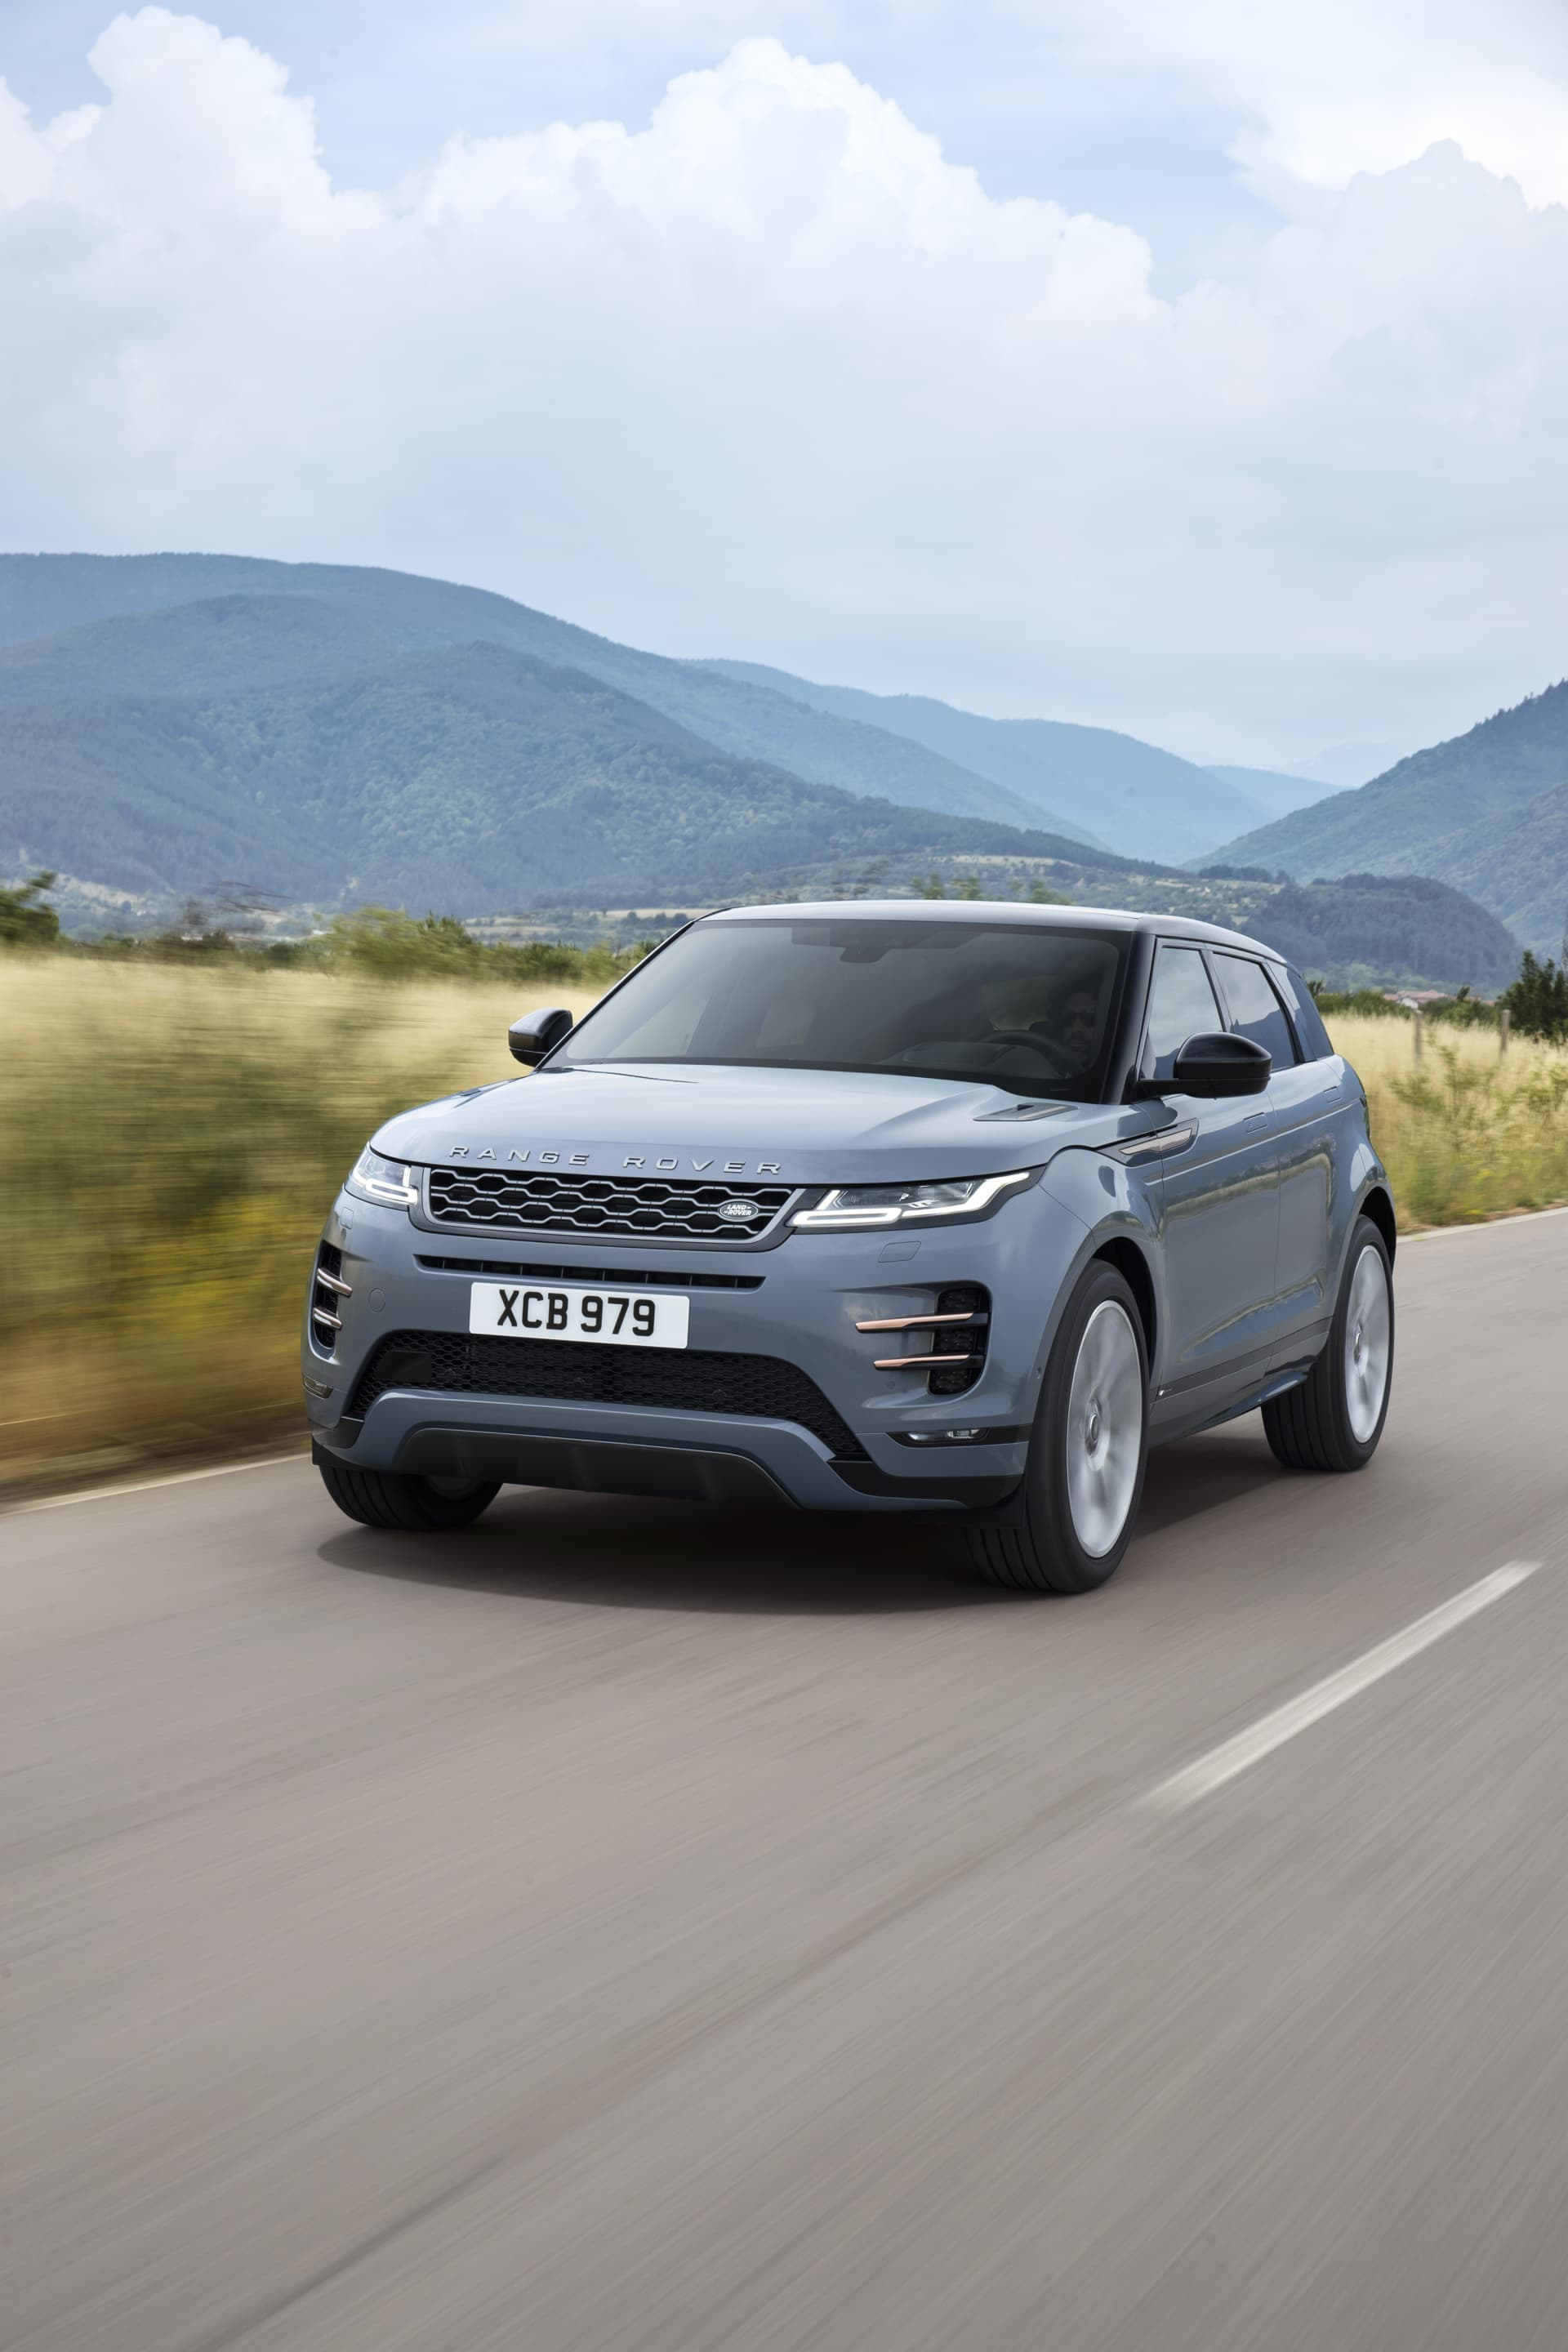 Range Rover Evoque 2019 Rr Evq 20my Dynamic Nd 221118 01